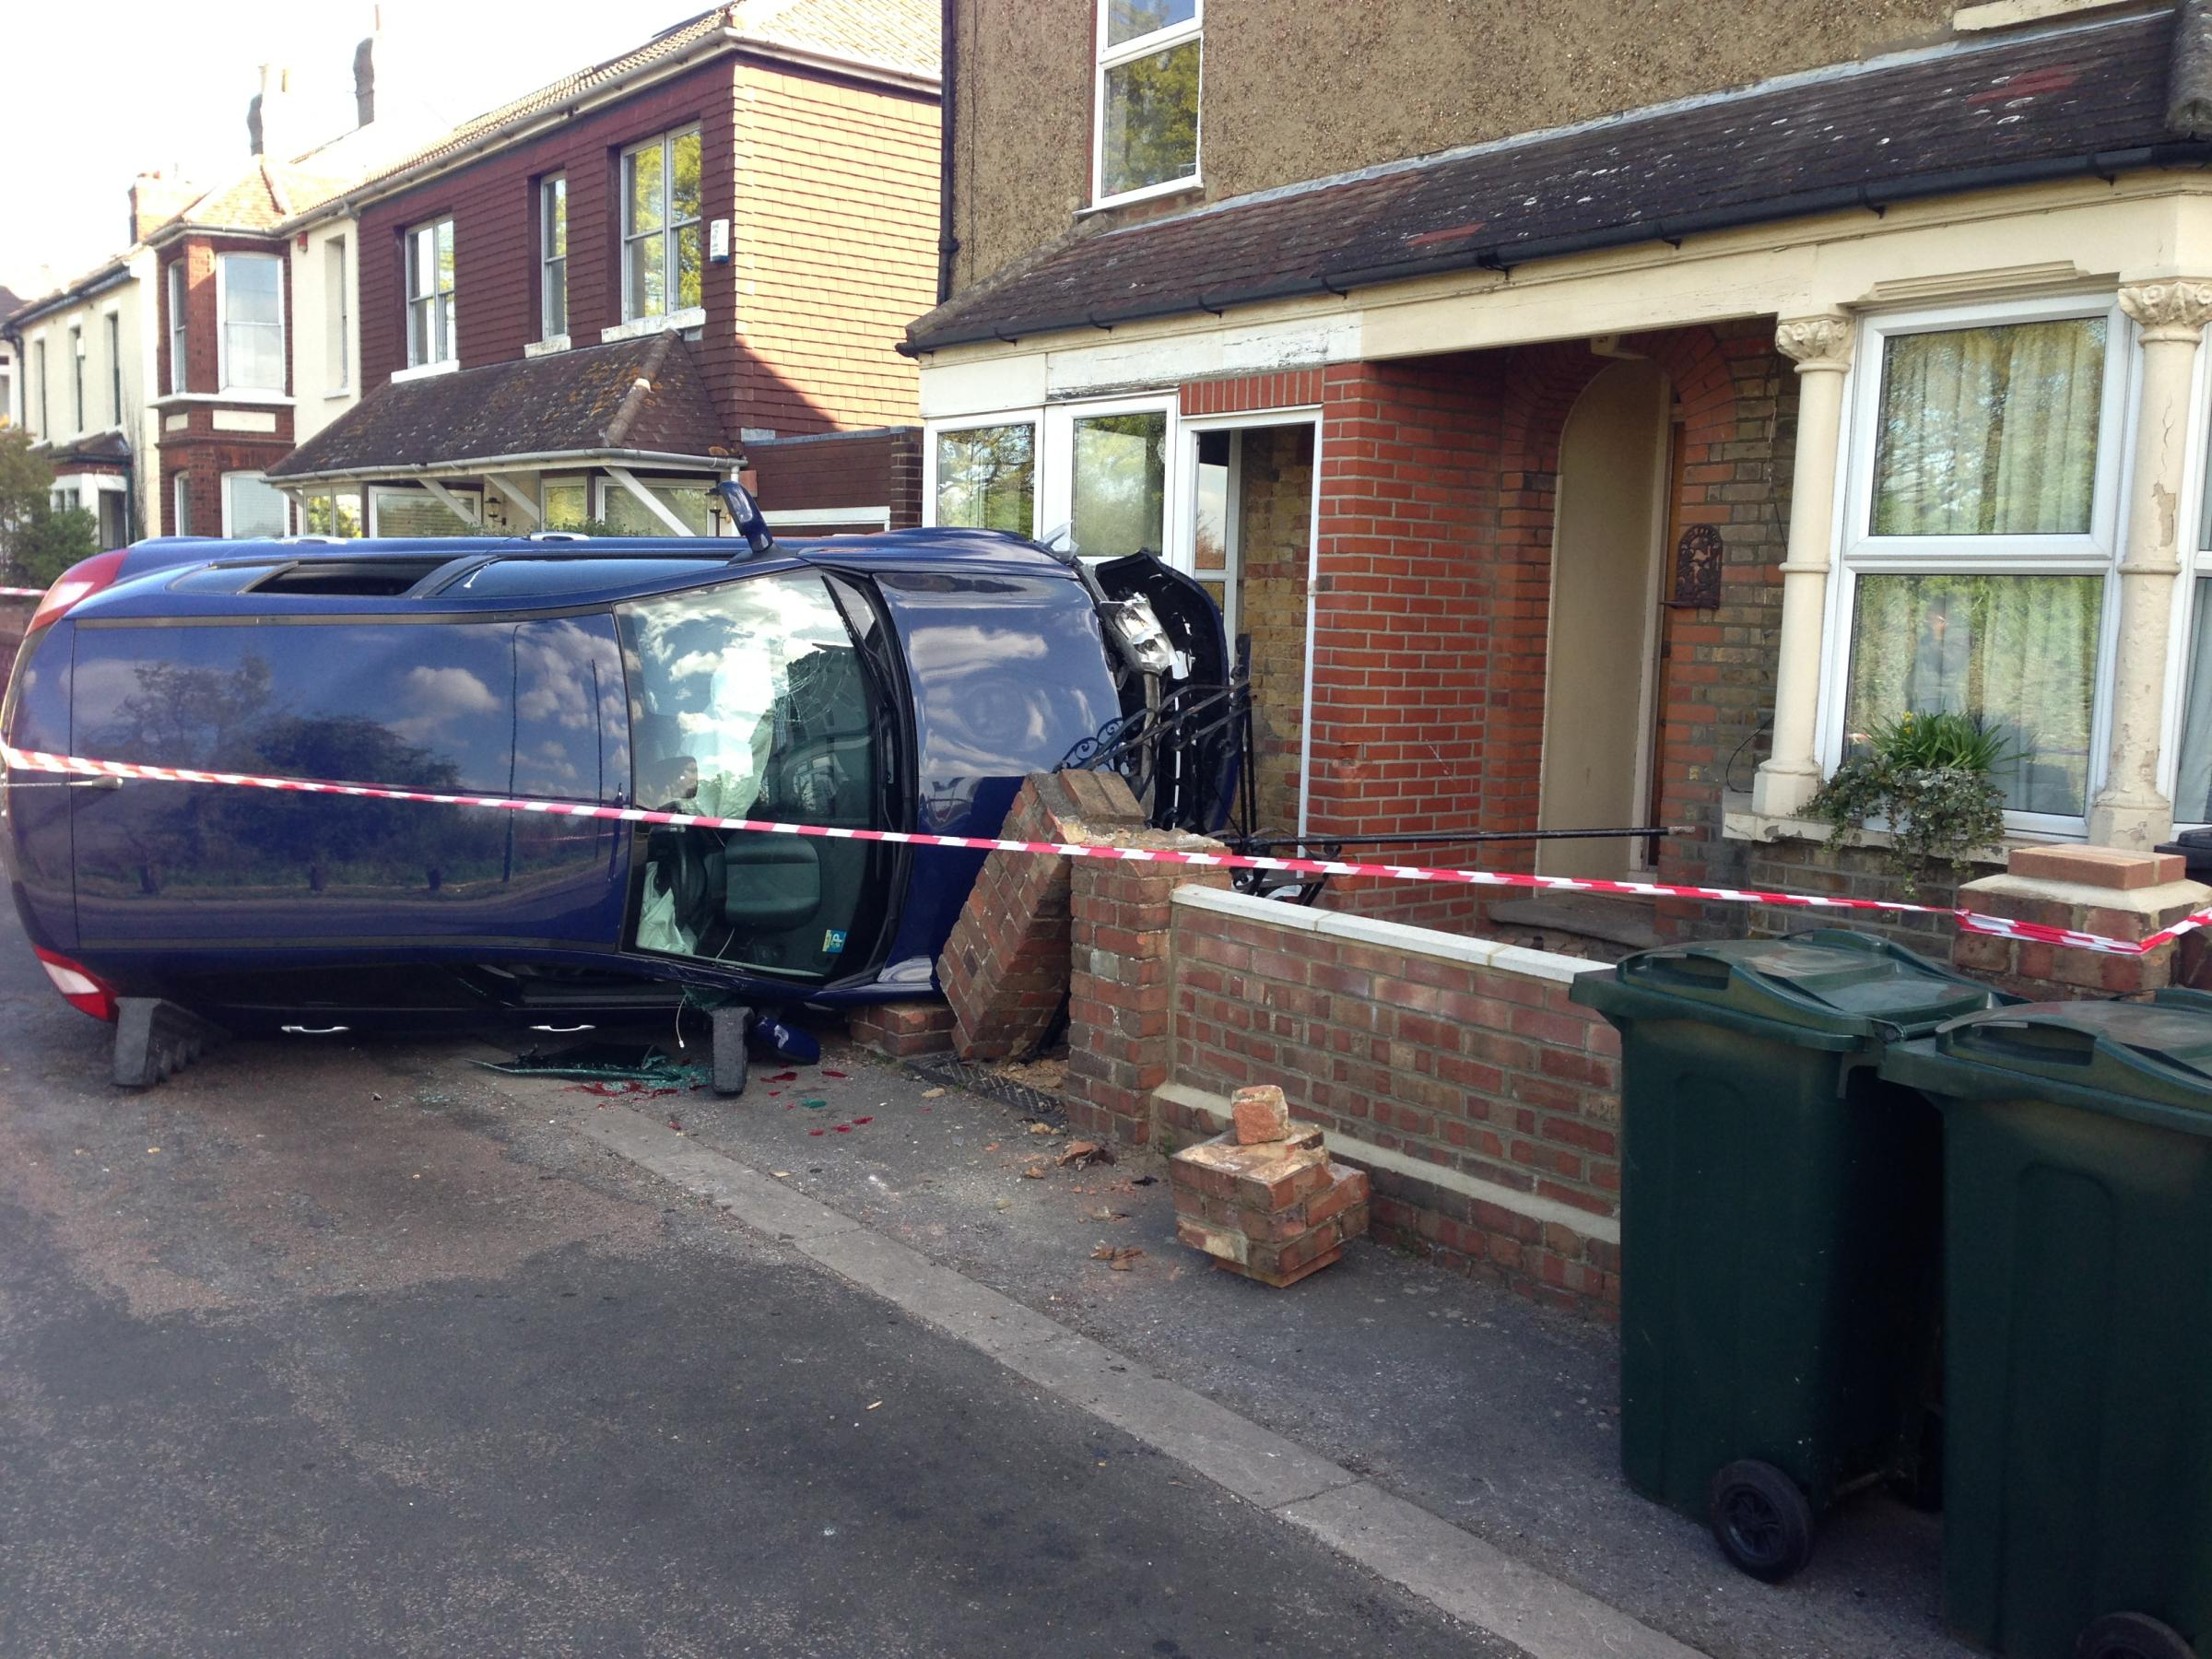 PICTURED: Lucky escape for Dartford mother after car flips and hits house